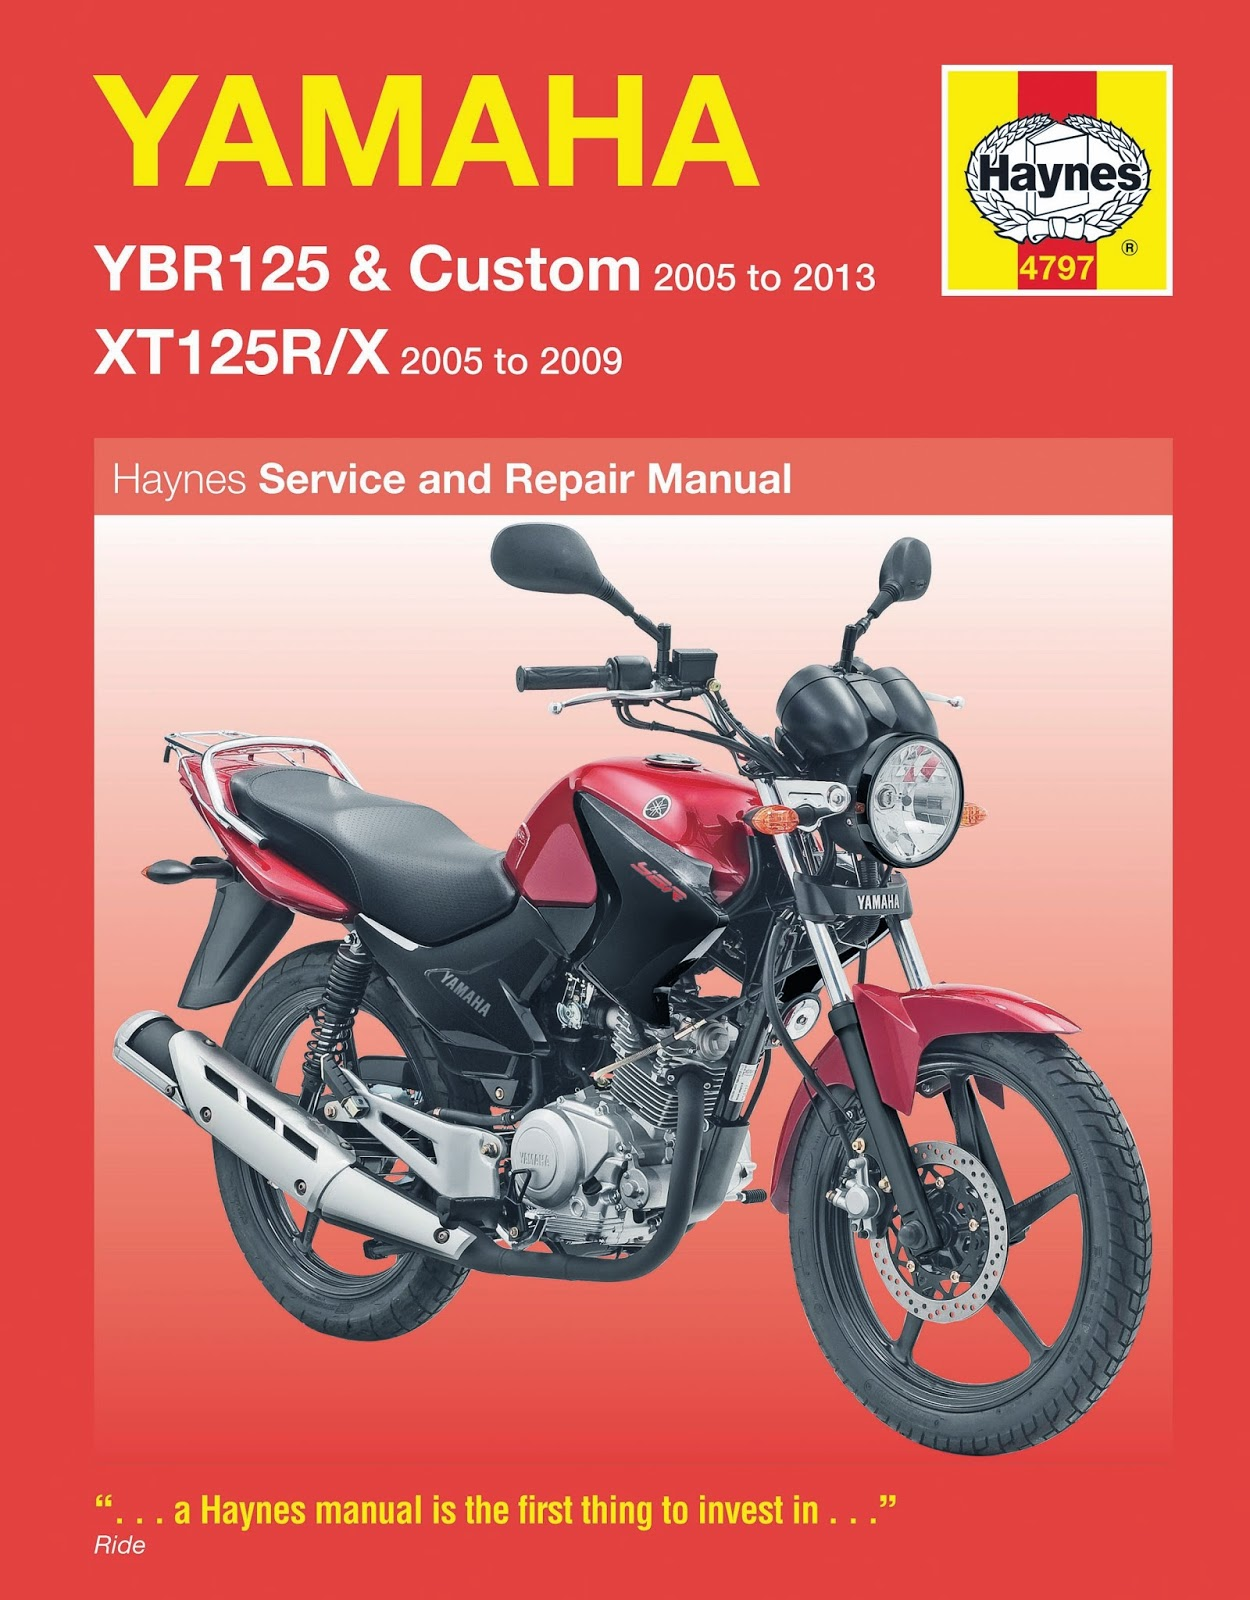 Yamaha YBR 125 electrical system , wiring diagrams and components .